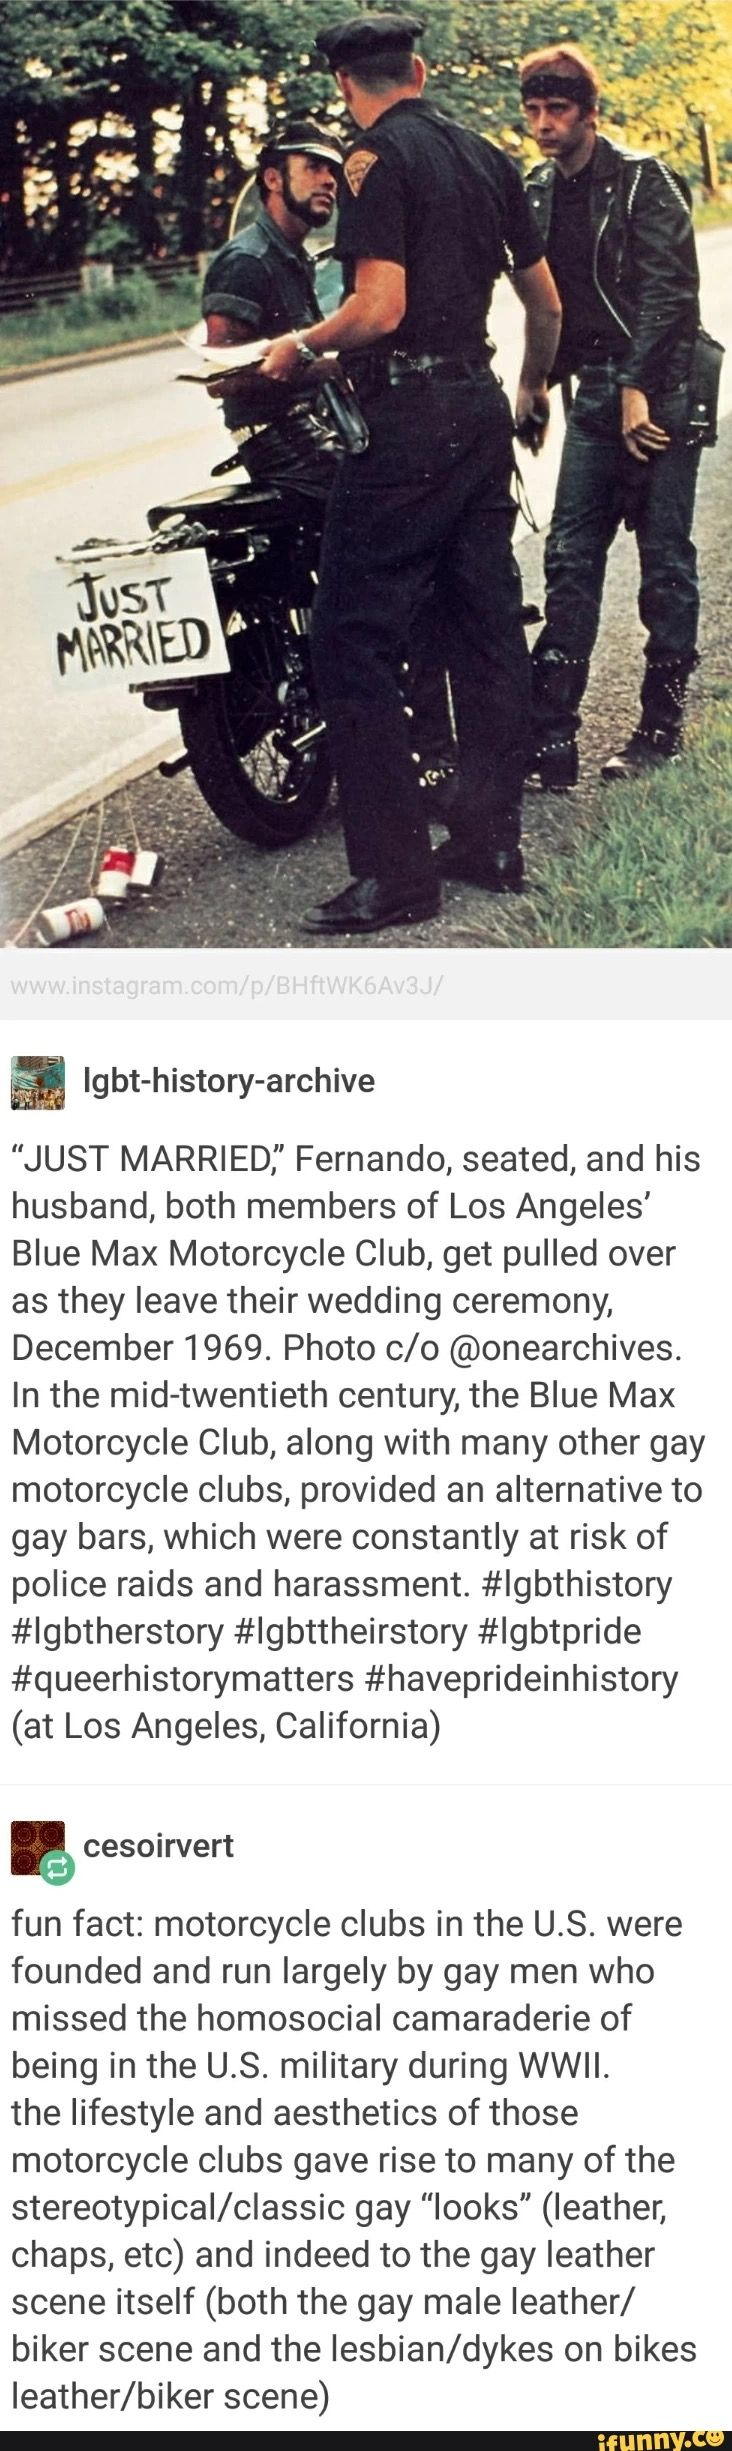 I didn't know this! LGBTQ+ history of motorcycle clubs run by gay men!